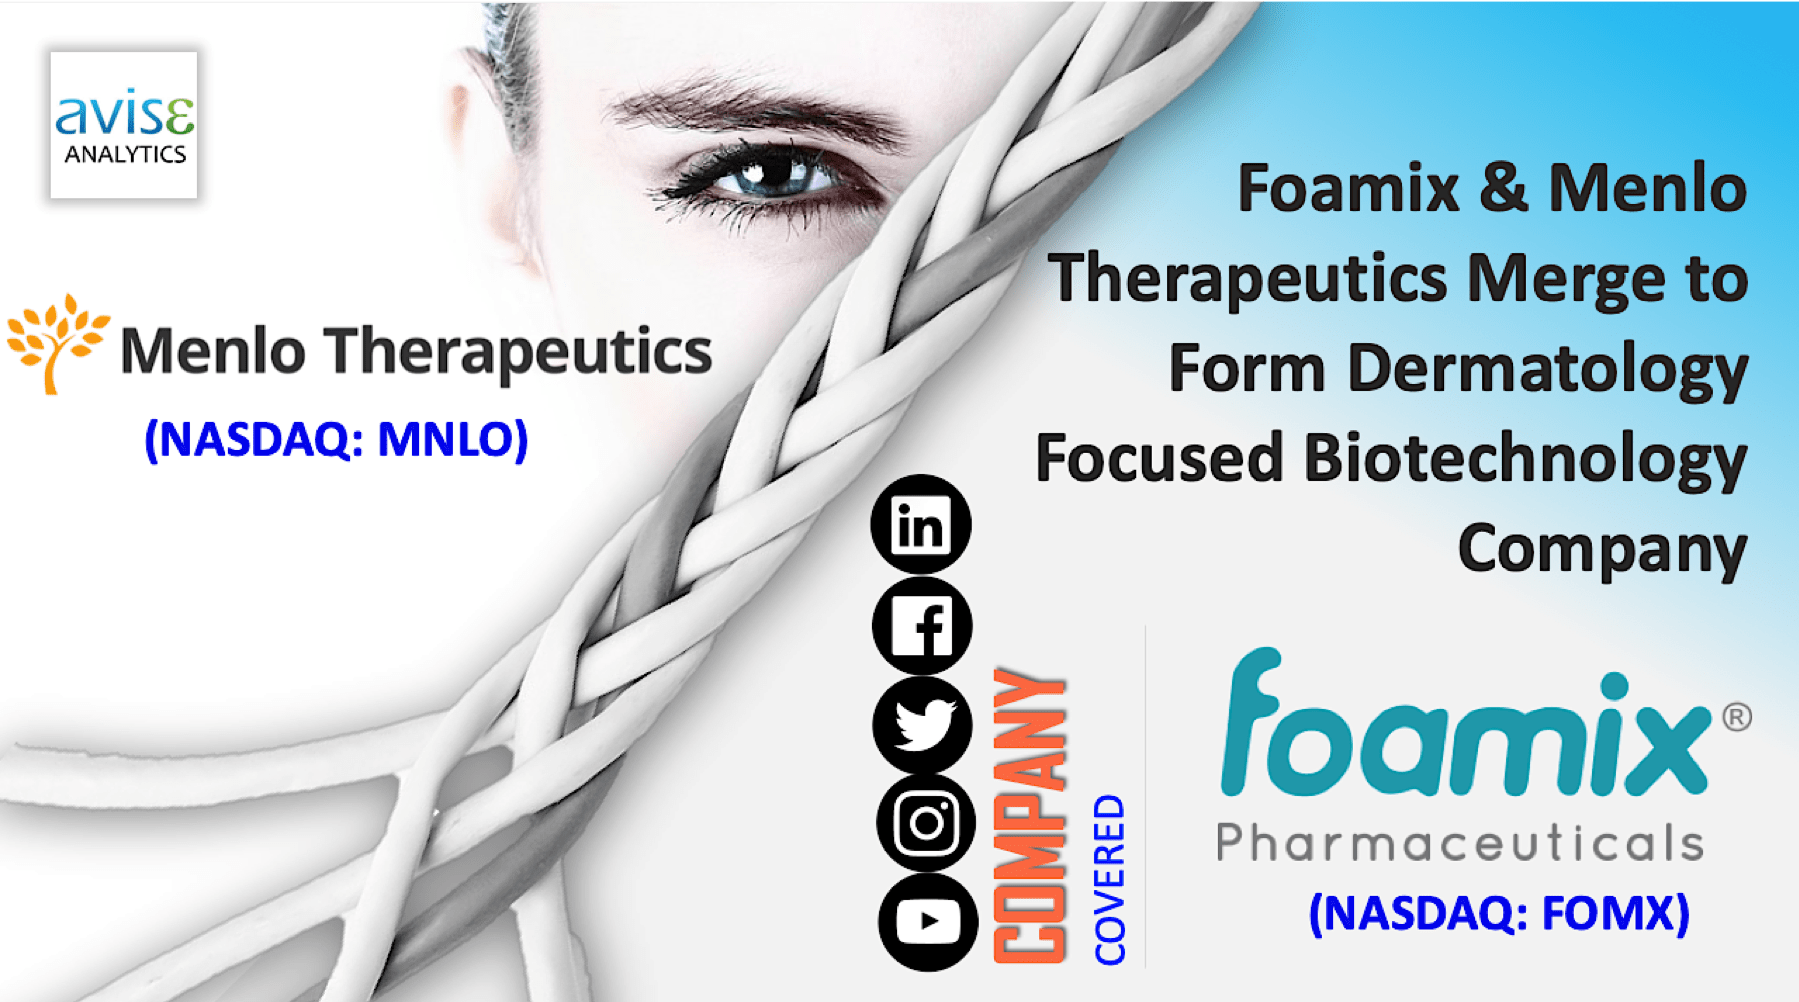 Foamix And Menlo Therapeutics Merge To Form Dermatology Focused